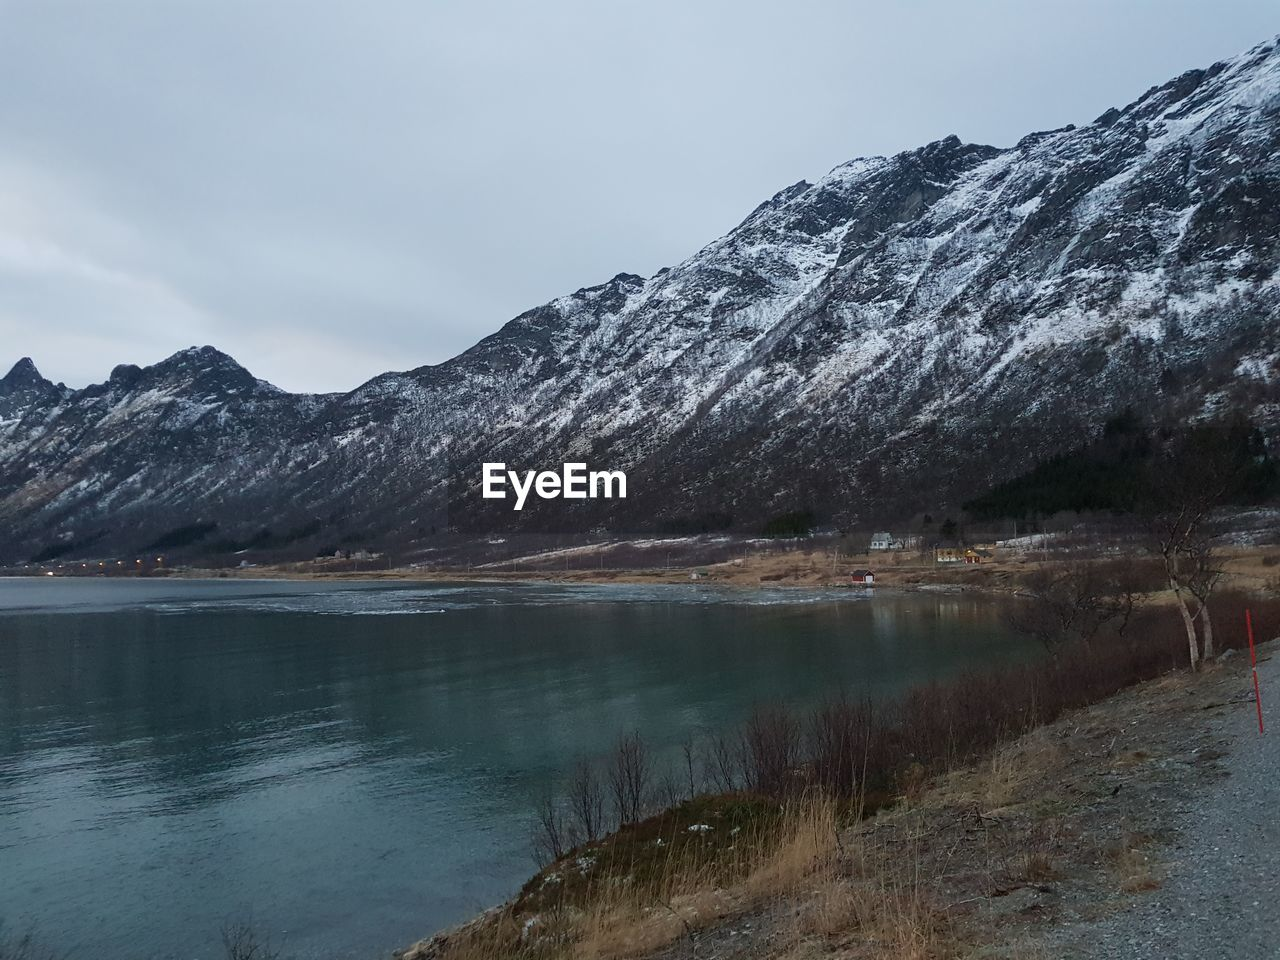 water, mountain, beauty in nature, scenics - nature, sky, tranquility, tranquil scene, lake, nature, no people, mountain range, reflection, cold temperature, non-urban scene, day, winter, environment, cloud - sky, outdoors